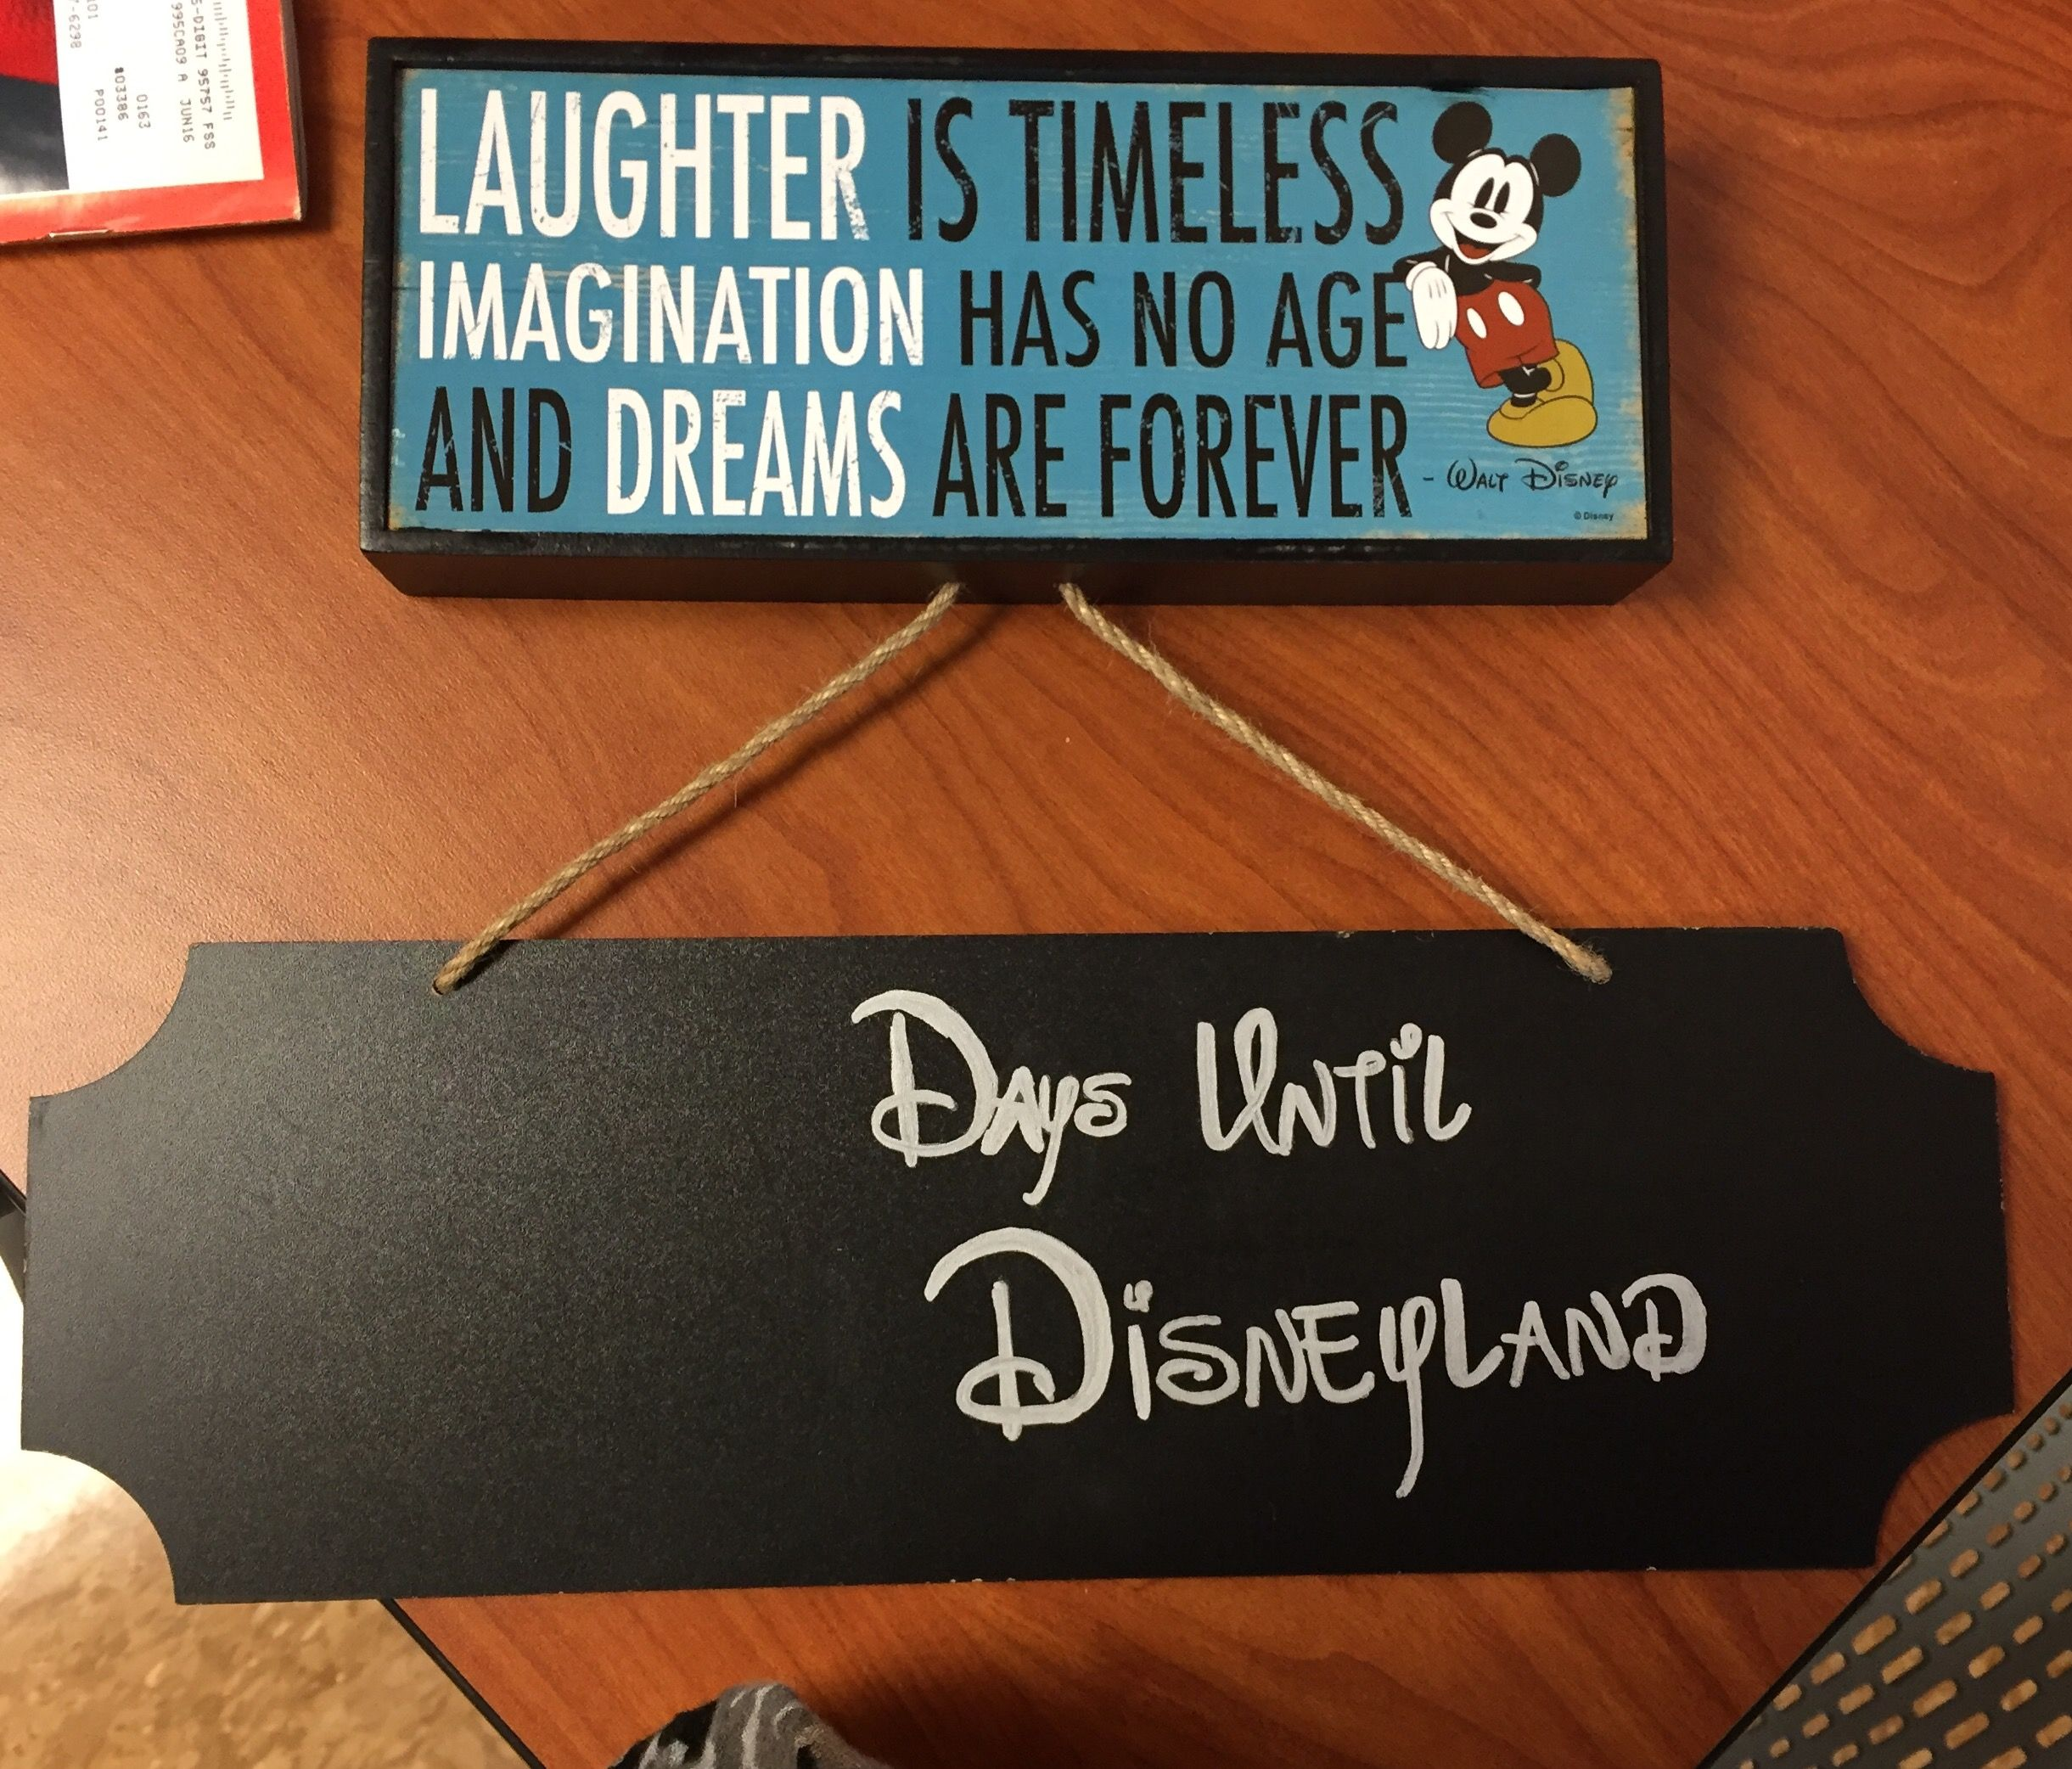 Disneyland Chalkboard Countdown. Made this for Christmas gift for surprise Disneyland trip.